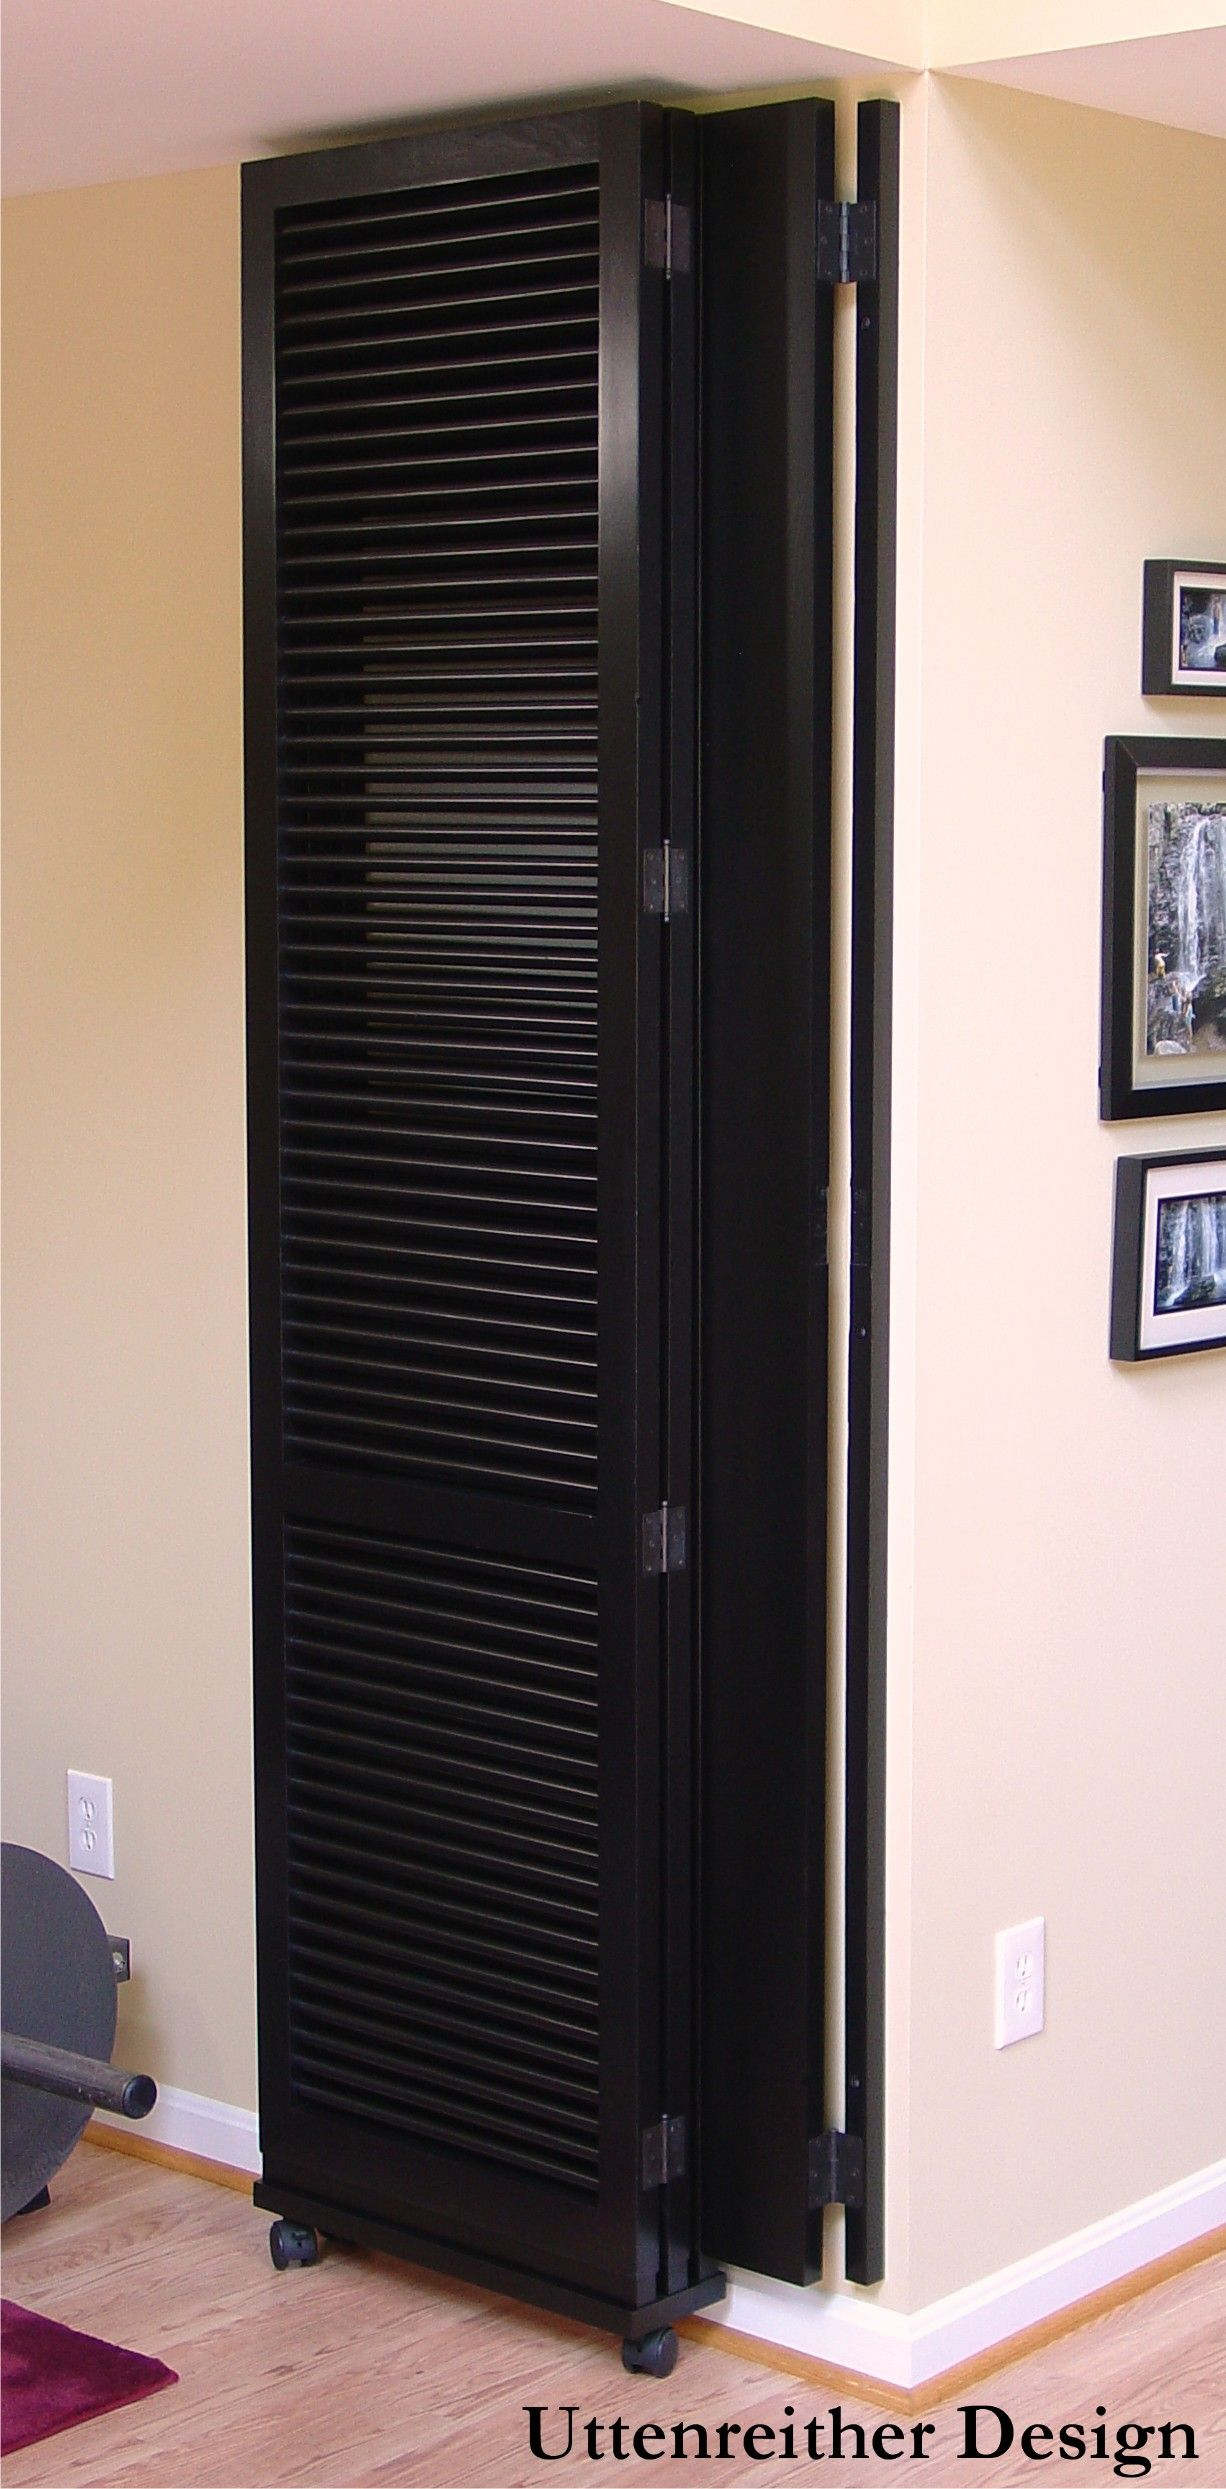 Room divider how to The room divider folds neatly to the